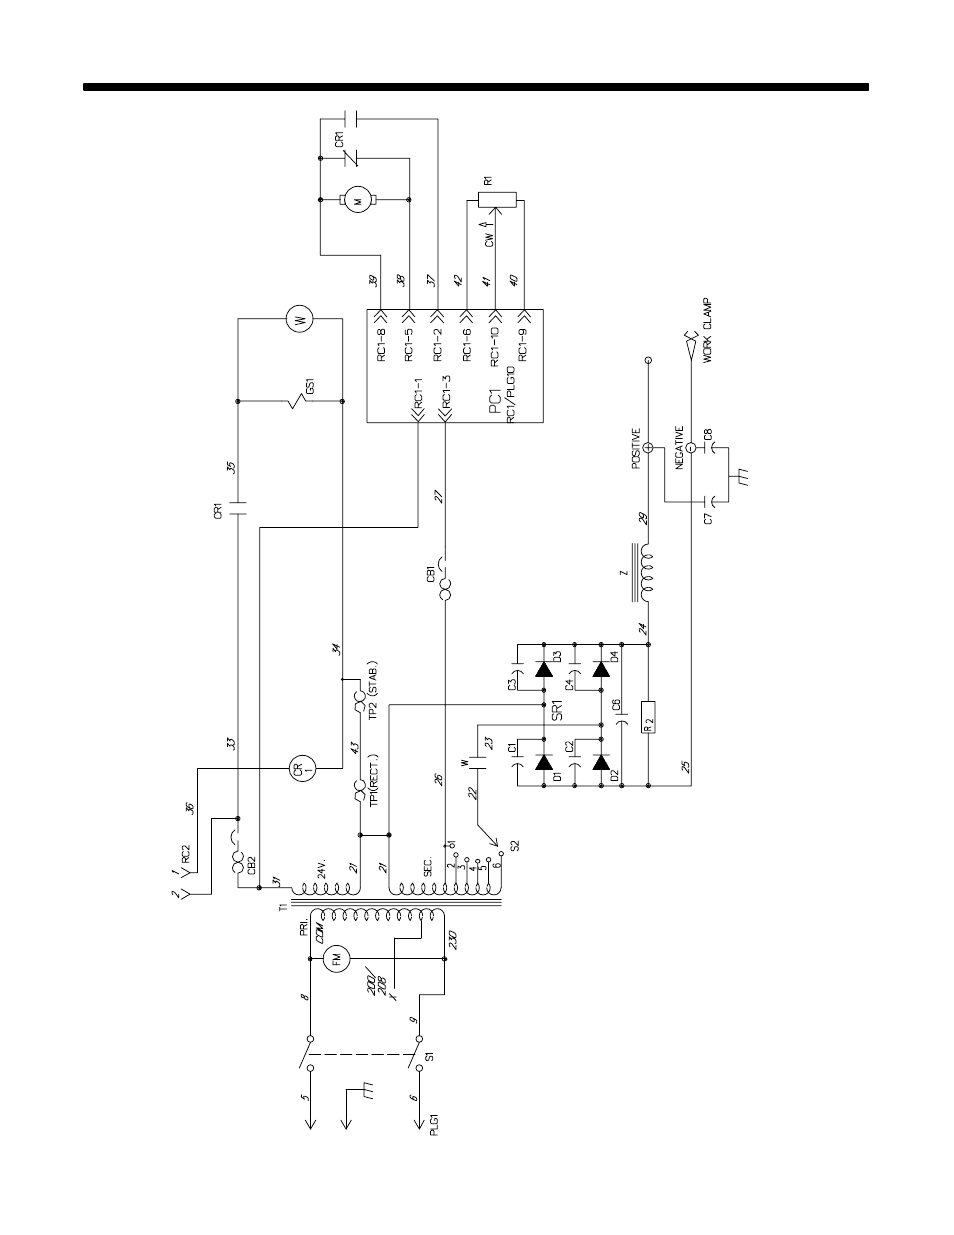 Fantastic Hobart Welder Wire Gallery - Wiring Schematics and ...